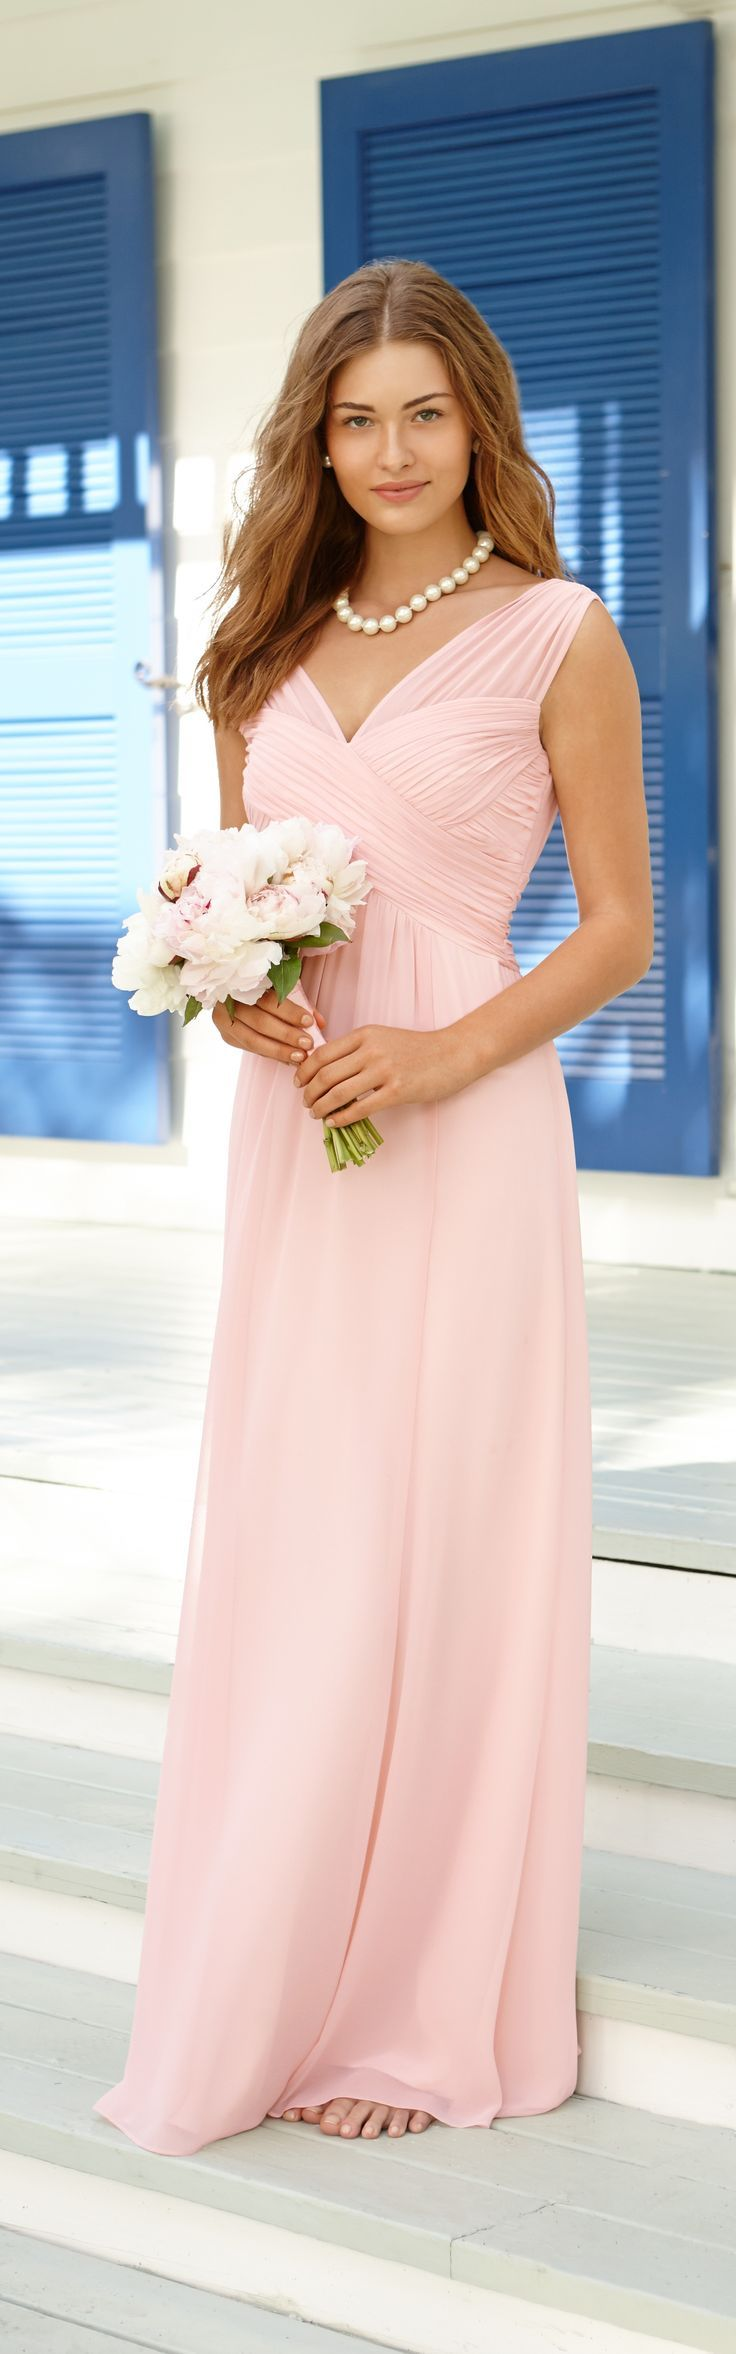 Best 25 light pink bridesmaids ideas on pinterest pink now shes your bridesmaid radiant in blush pink weddingsbridesmaid dresses purple ombrellifo Gallery